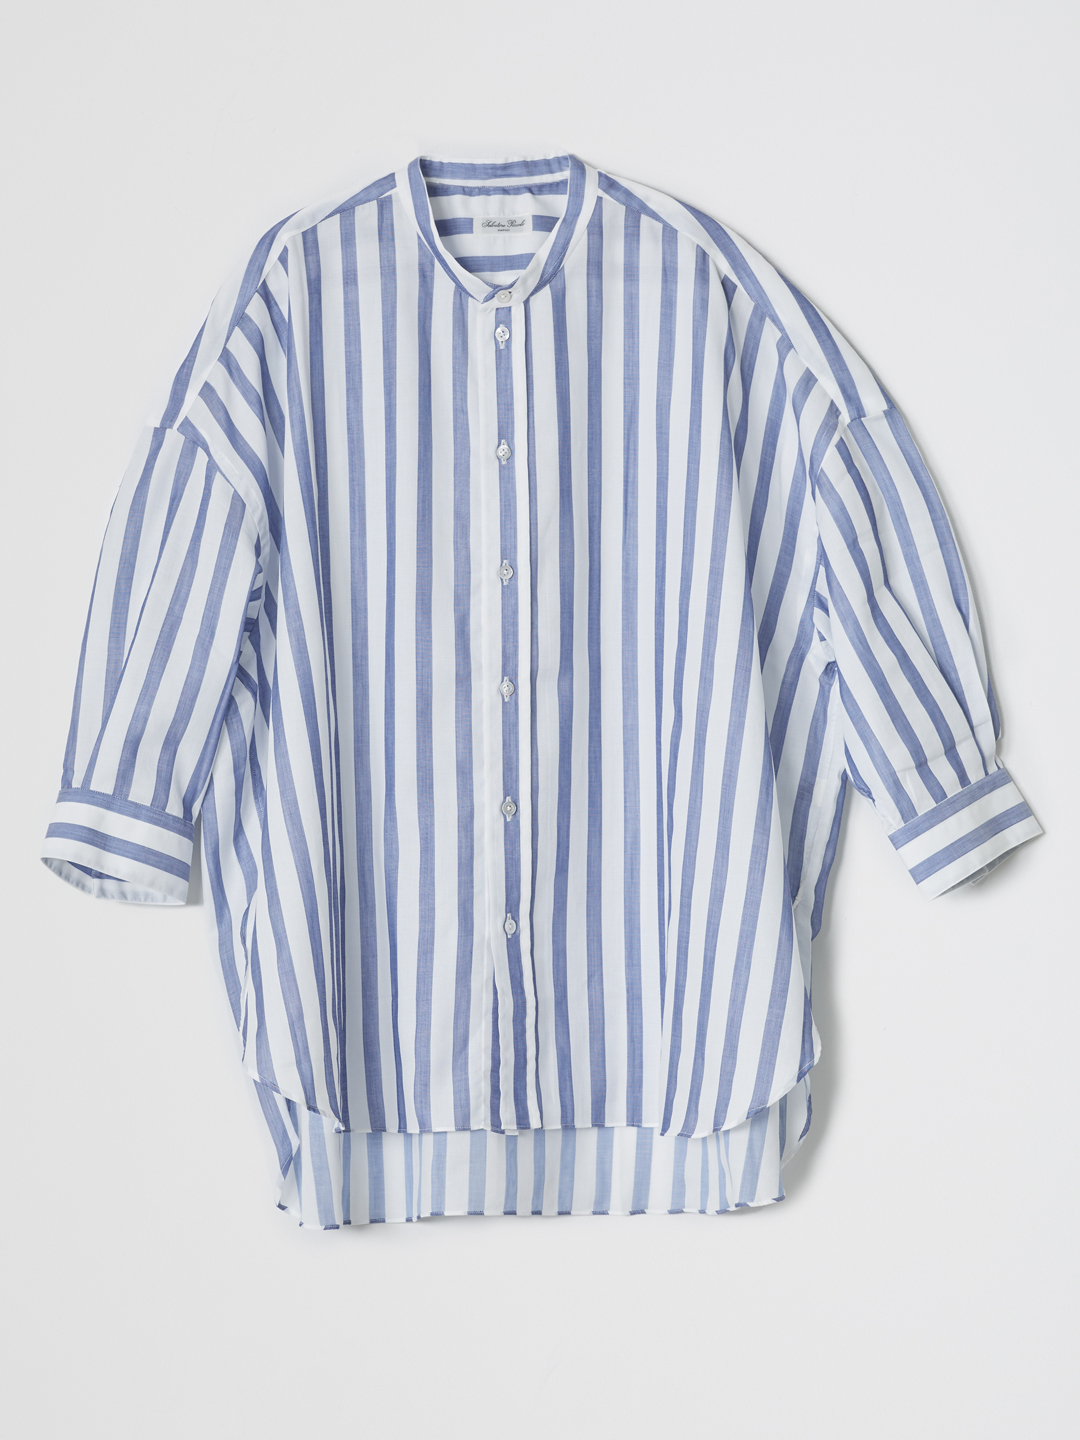 MONICA Stripe Shirt - Blue